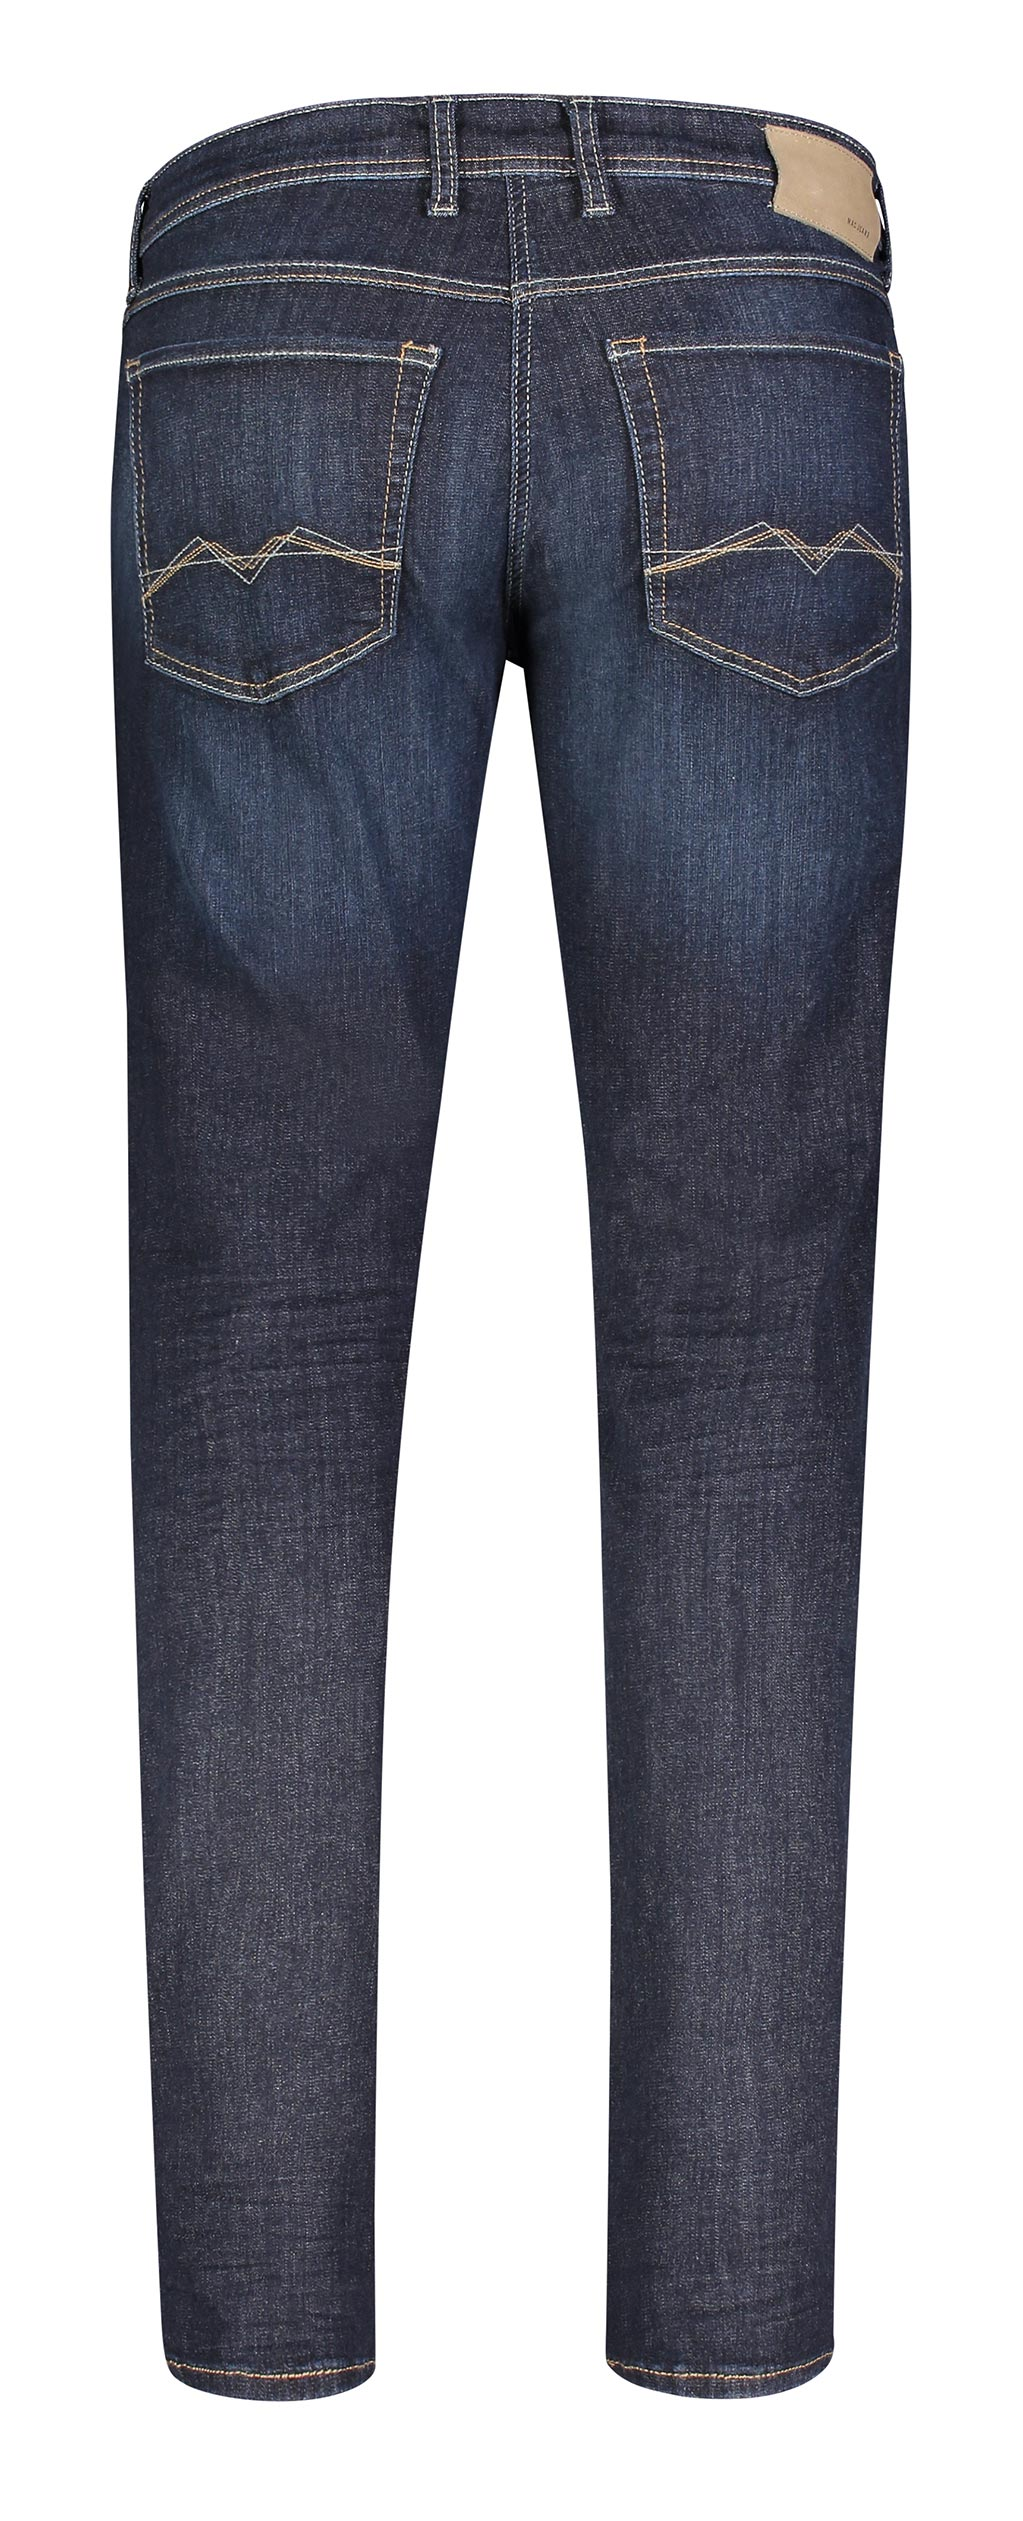 Dark Blue MacFlexx Jeans by MAC